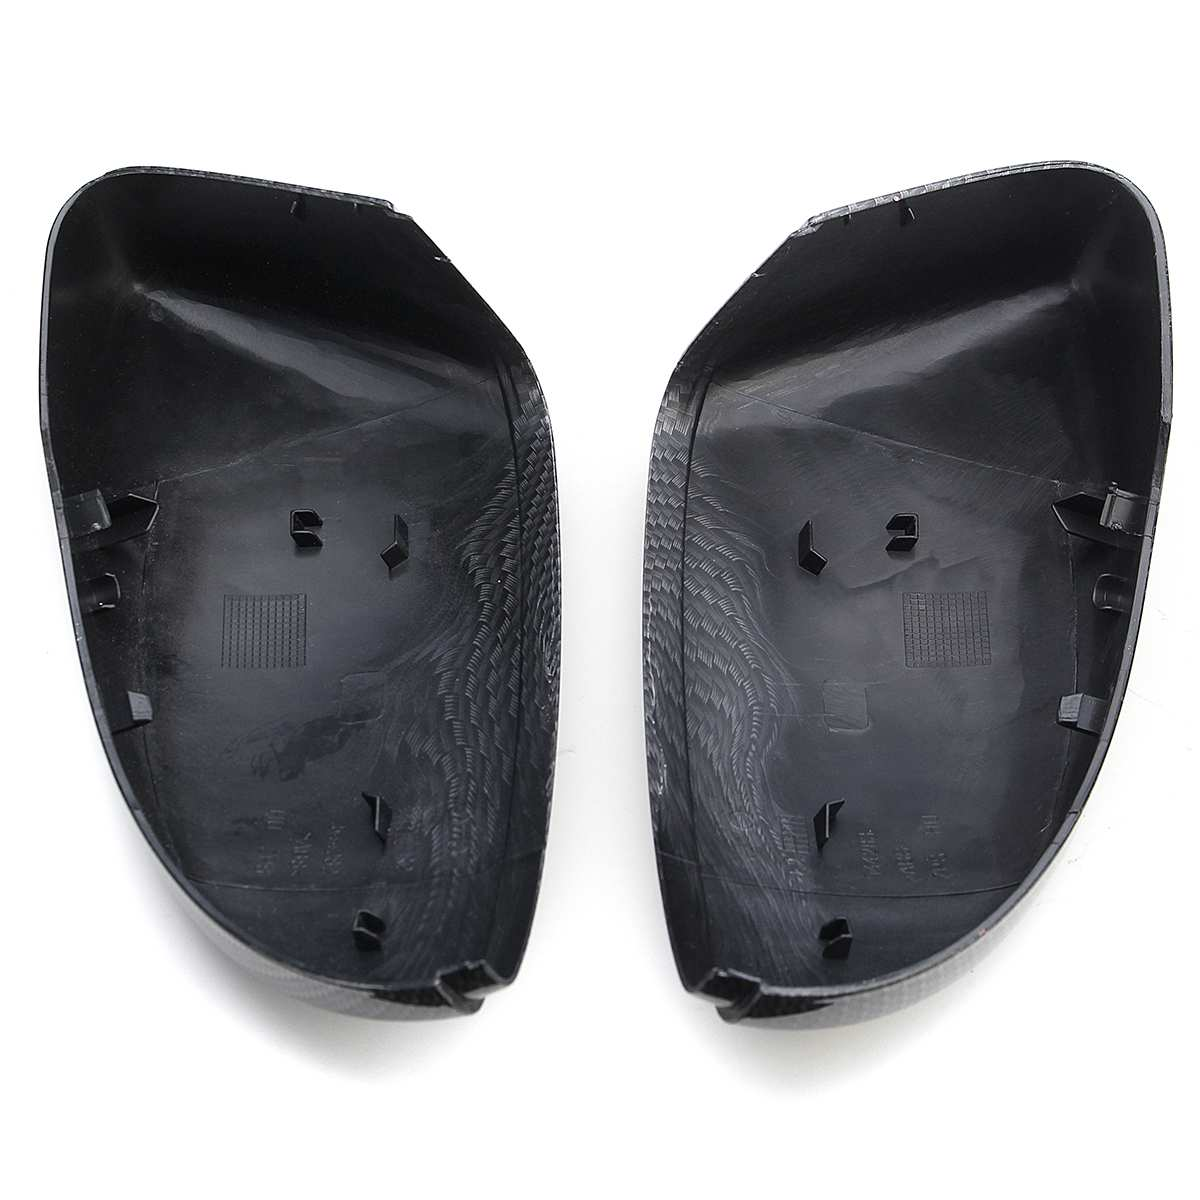 LETAOSK 1 pair ABS Rear View Wing Mirror Covers Caps fit for VW Beetle CC Passat Scirocco EOS # 3C8857537